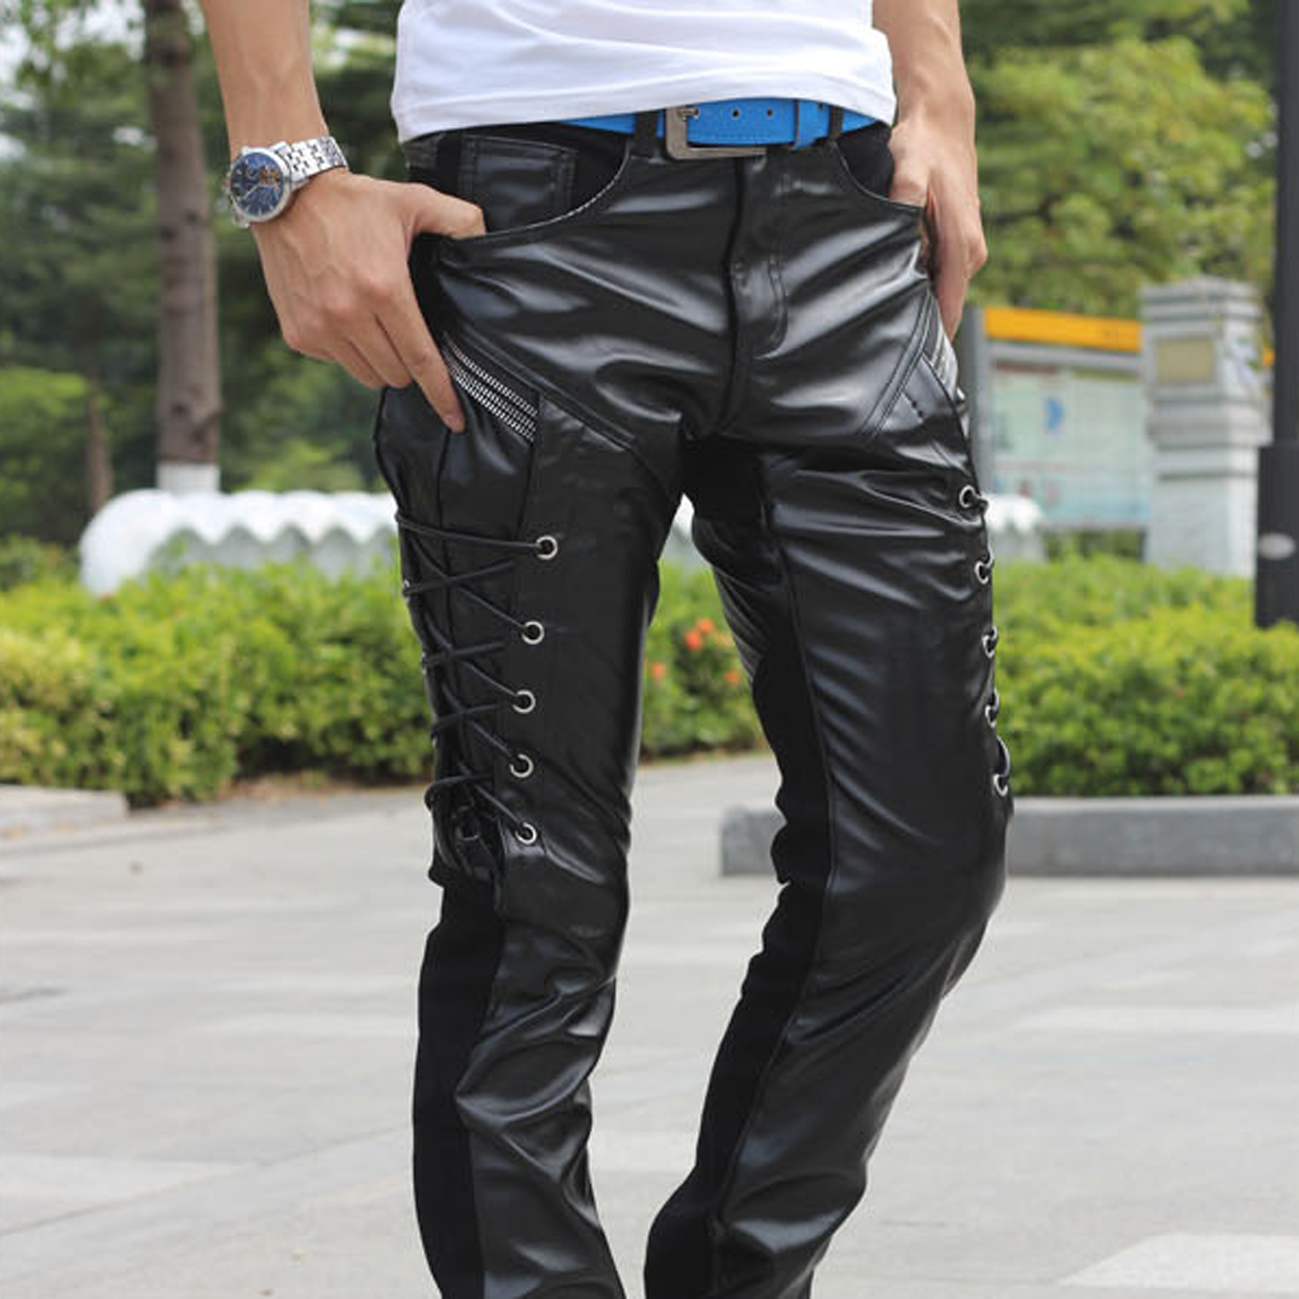 Popular mens skinny leather pants of Good Quality and at Affordable Prices You can Buy on AliExpress. We believe in helping you find the product that is right for you. AliExpress carries wide variety of products, so you can find just what you're looking for – and maybe something you .